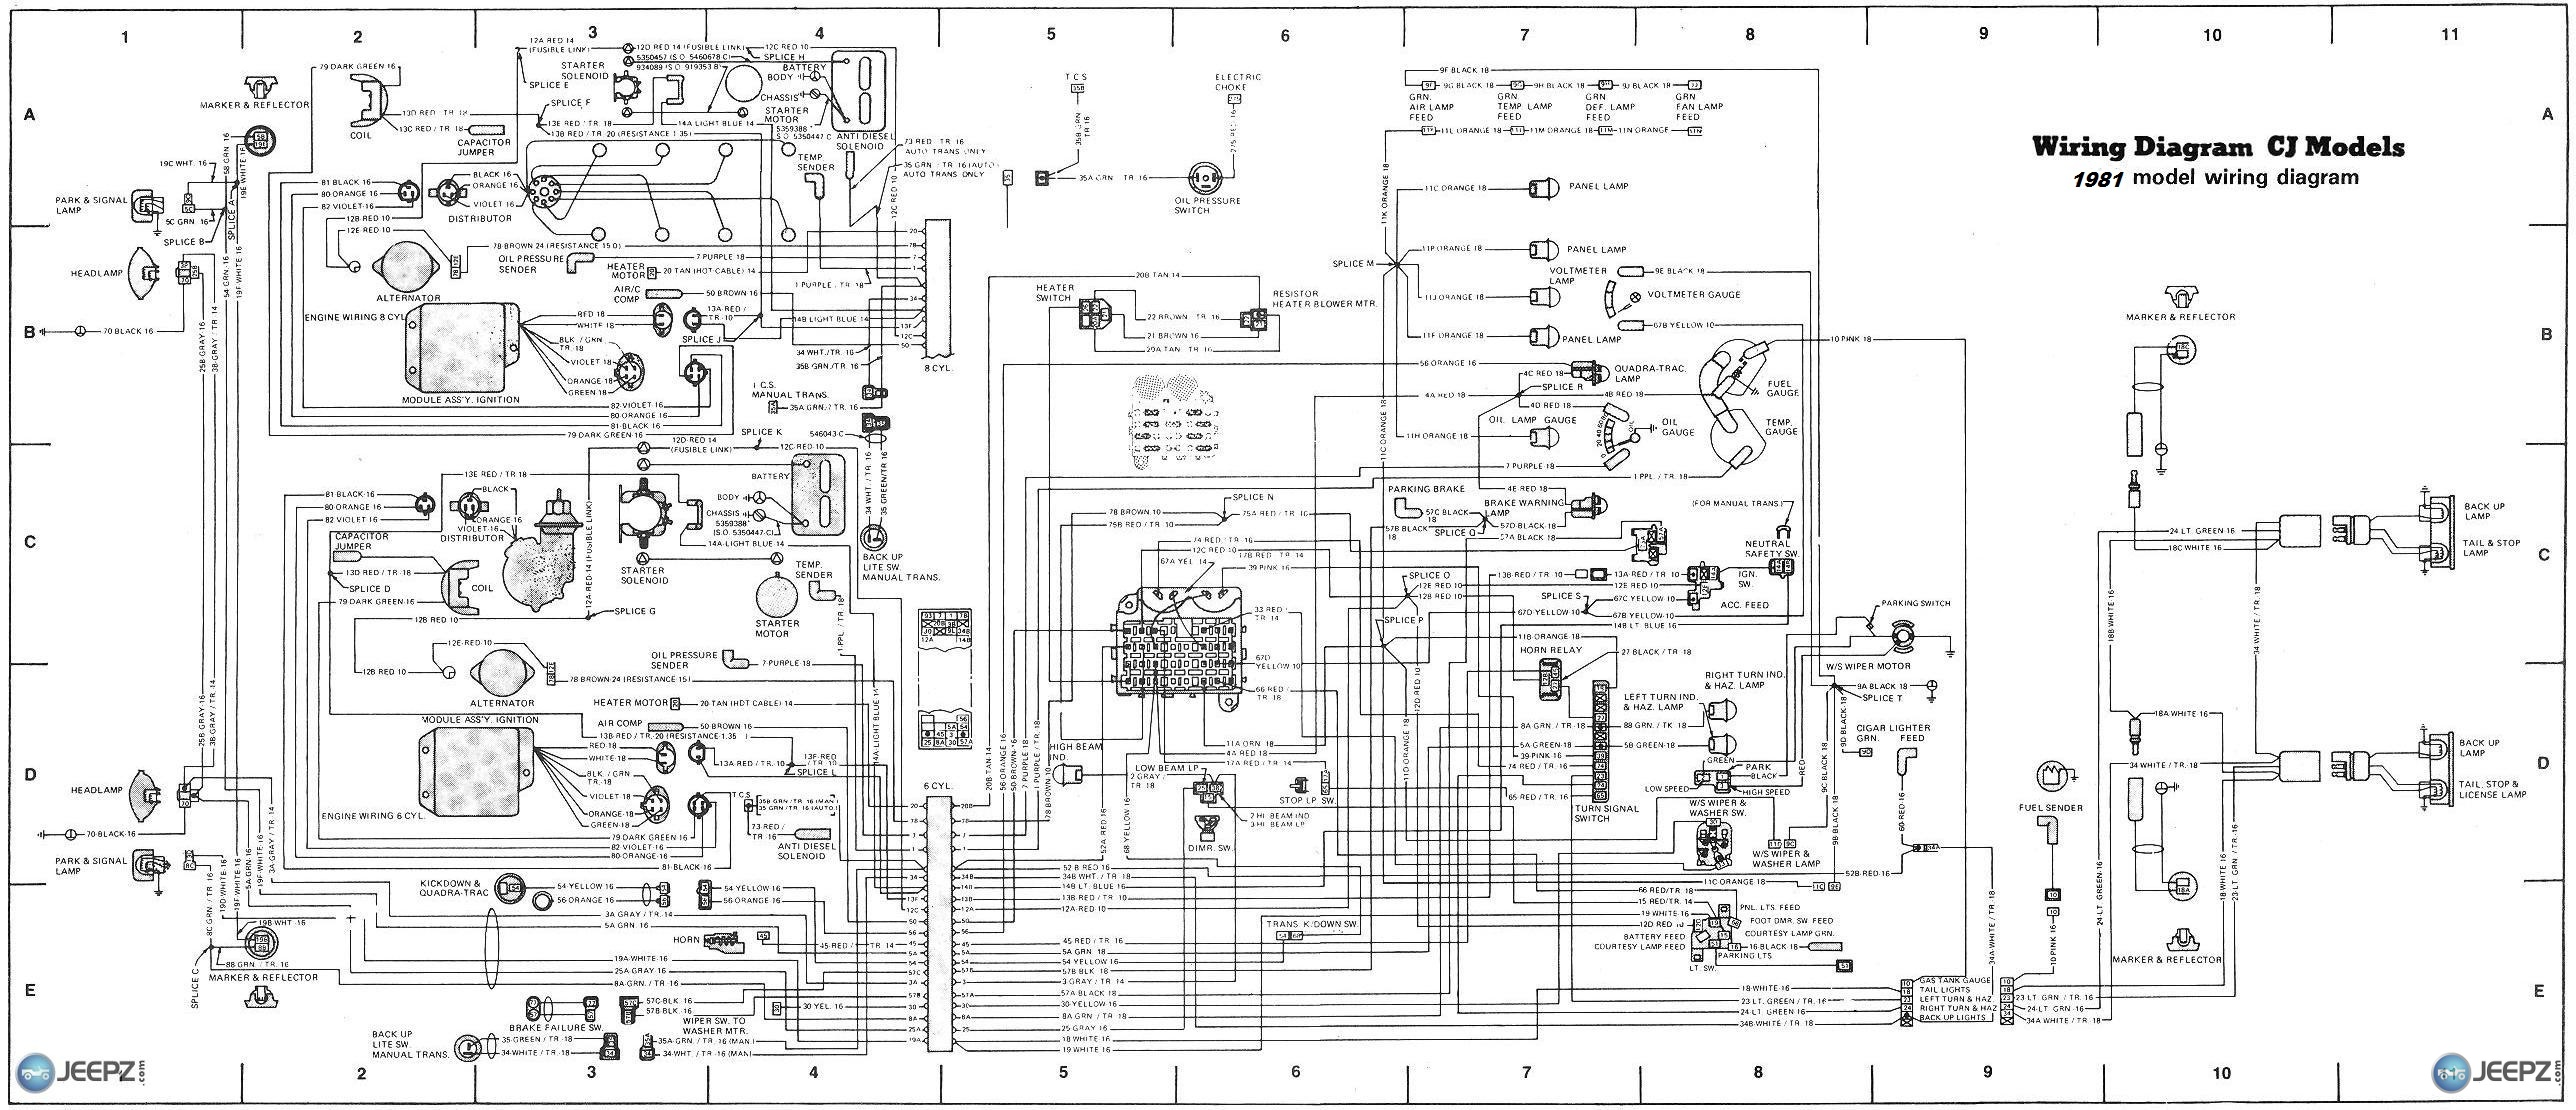 1980 jeep cj7 wiring diagram auto electrical wiring diagram 77 cj7 wiring-diagram  1980 jeep